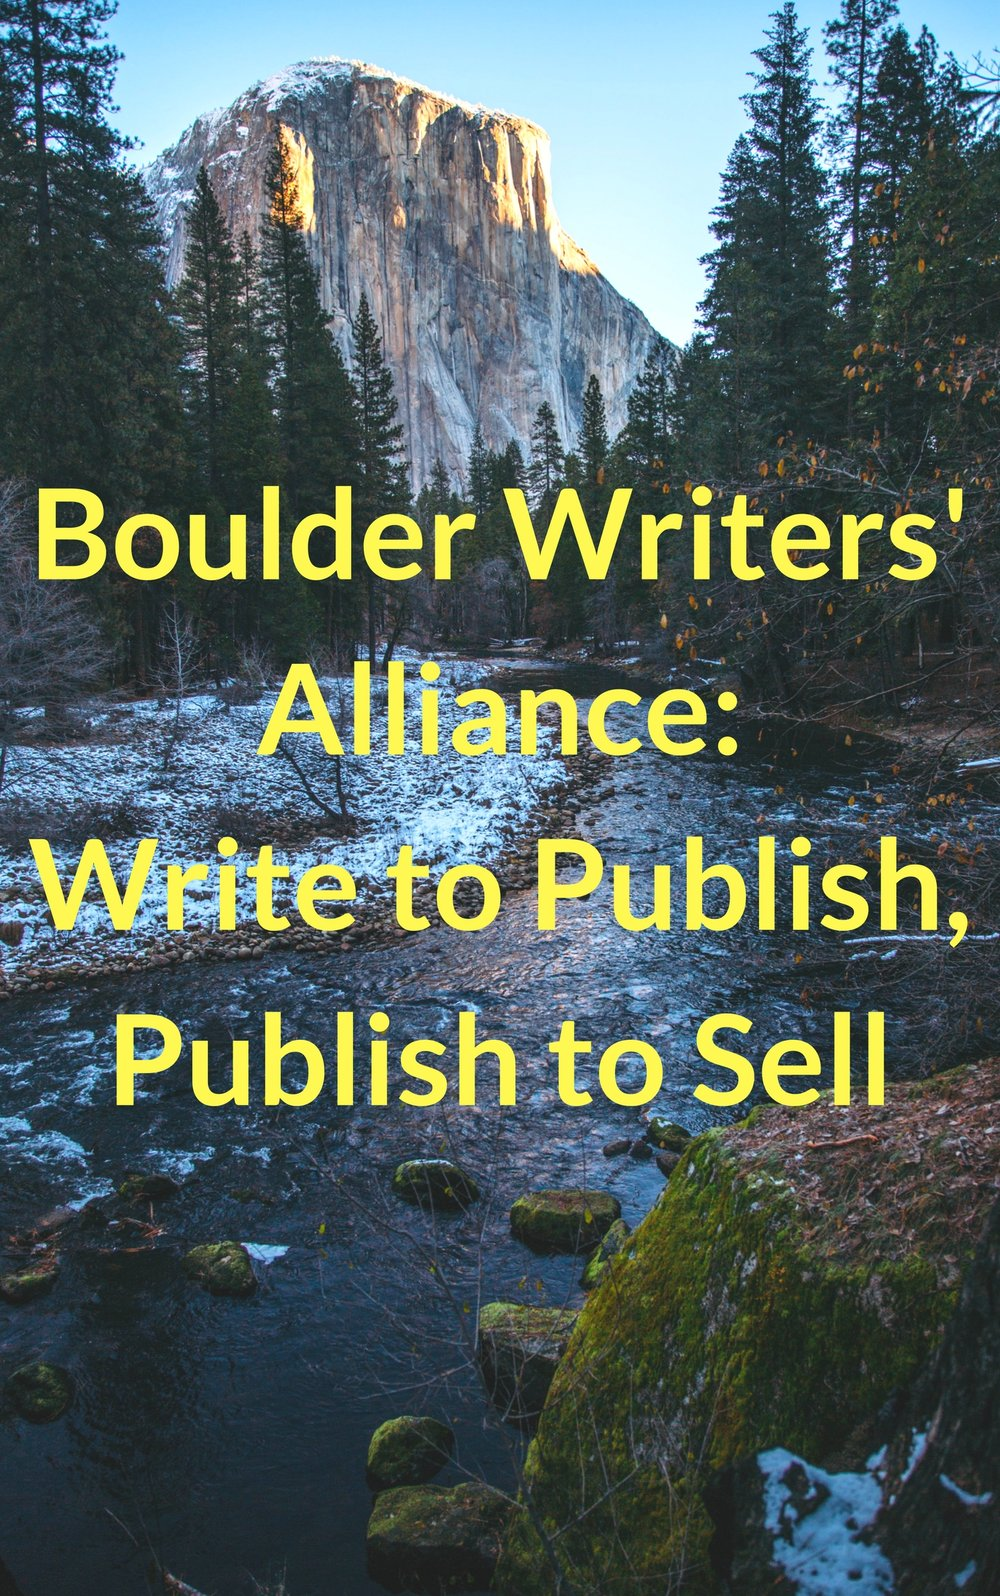 Image of a river in the mountains with the Boulder Writers' Alliance Write to Publish, Publish to Sell logo on it